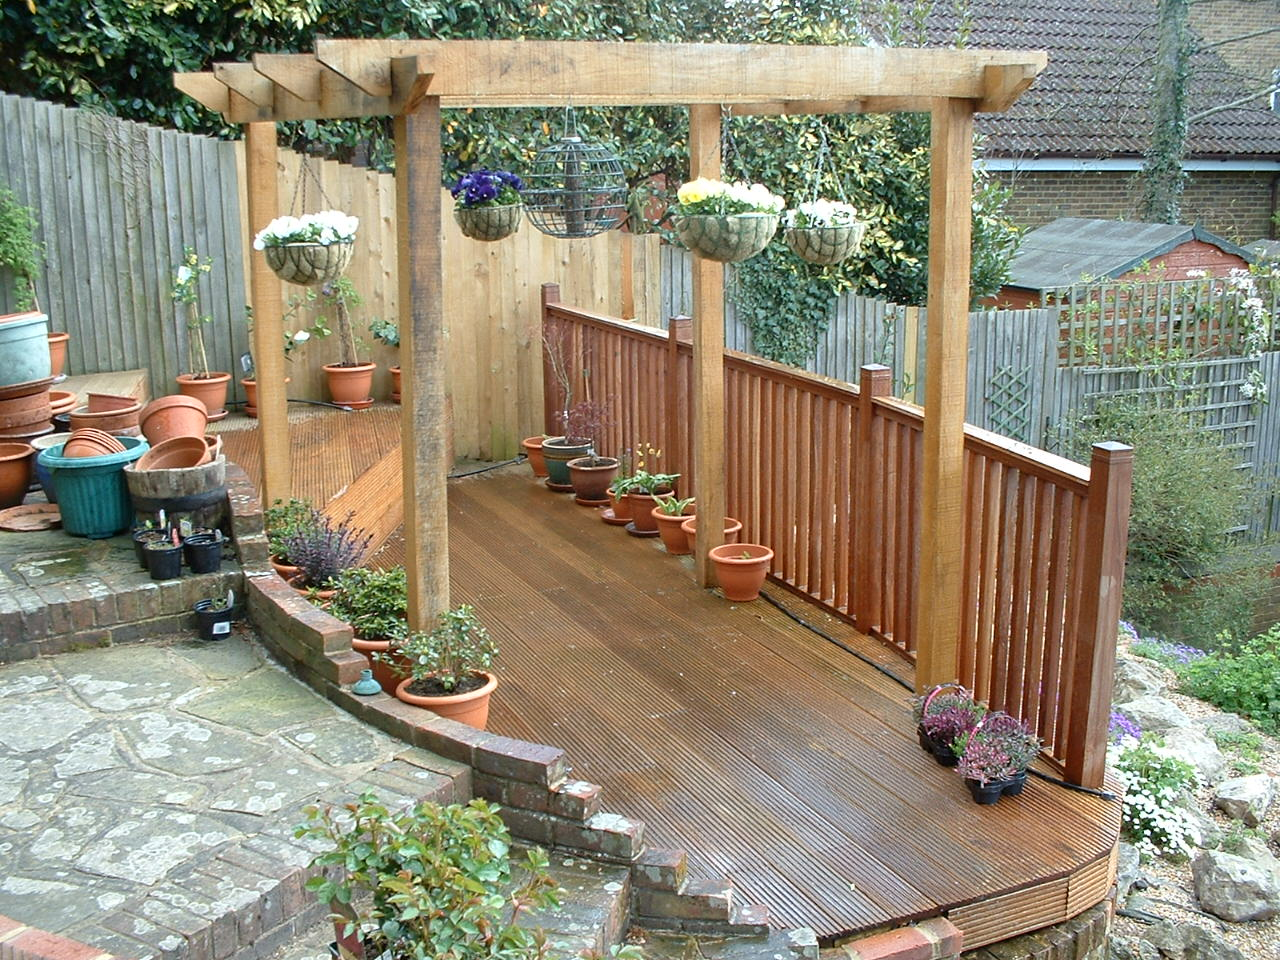 Garden landscaping kent isle landscapers limited for Garden decking maidstone